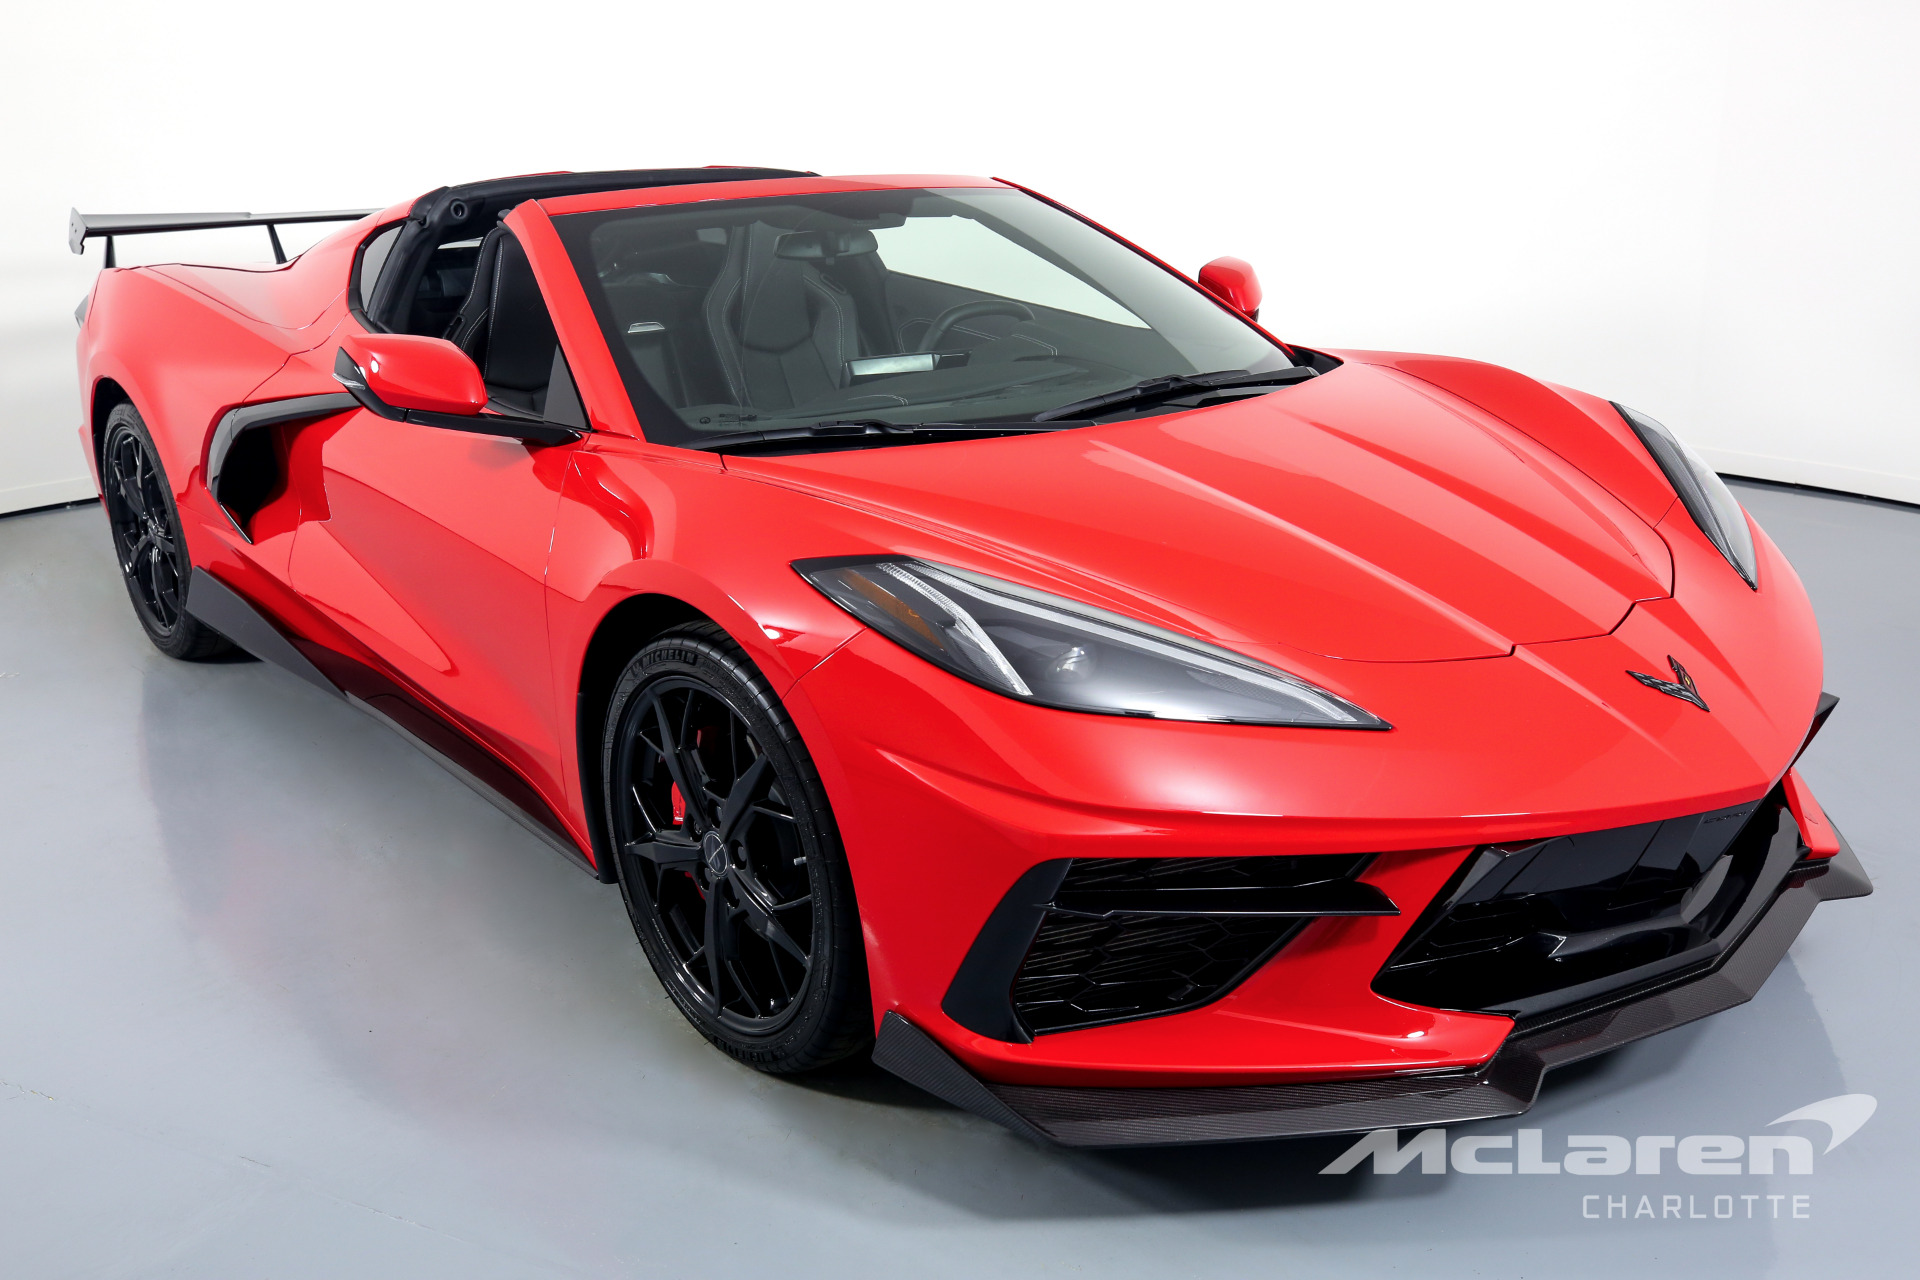 Used 2020 Chevrolet Corvette Stingray | Charlotte, NC